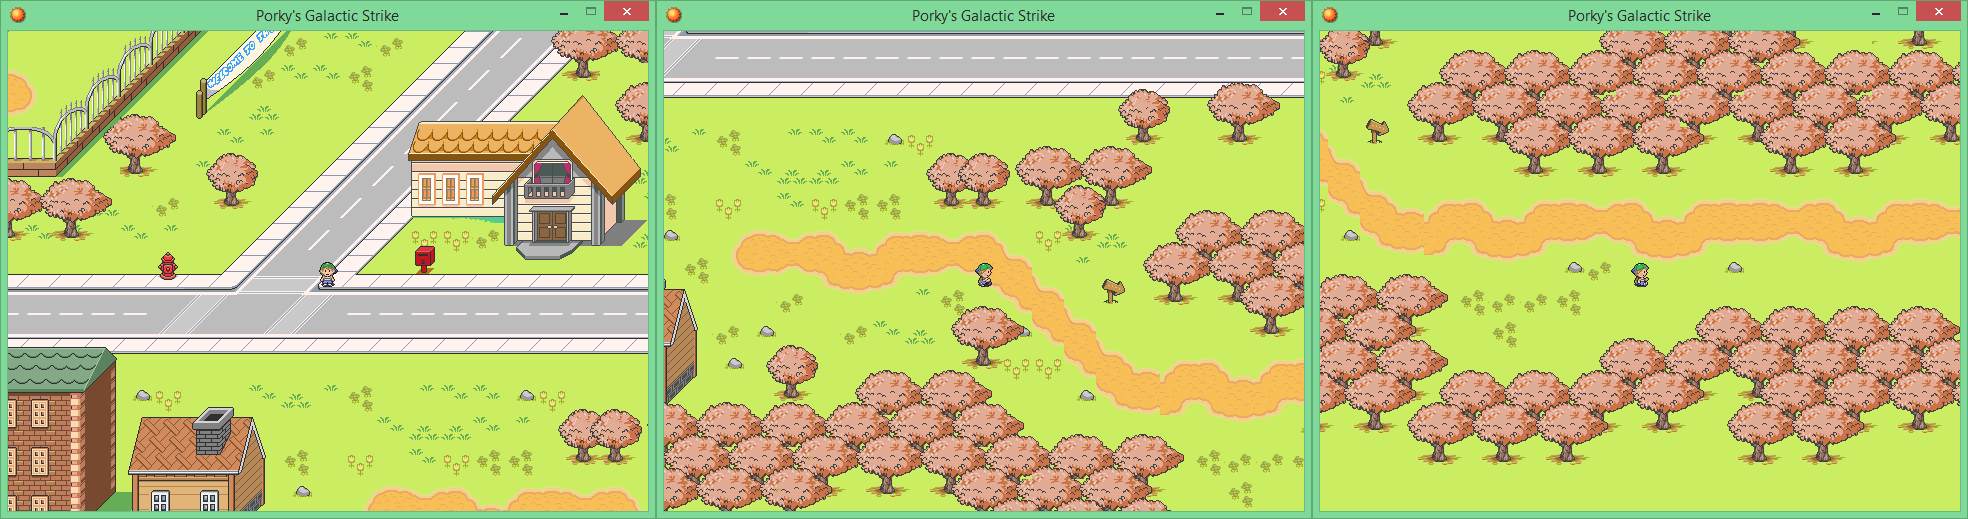 Mother porkys galactic strike fan games and programs forum new official gameplay screenshots gumiabroncs Choice Image